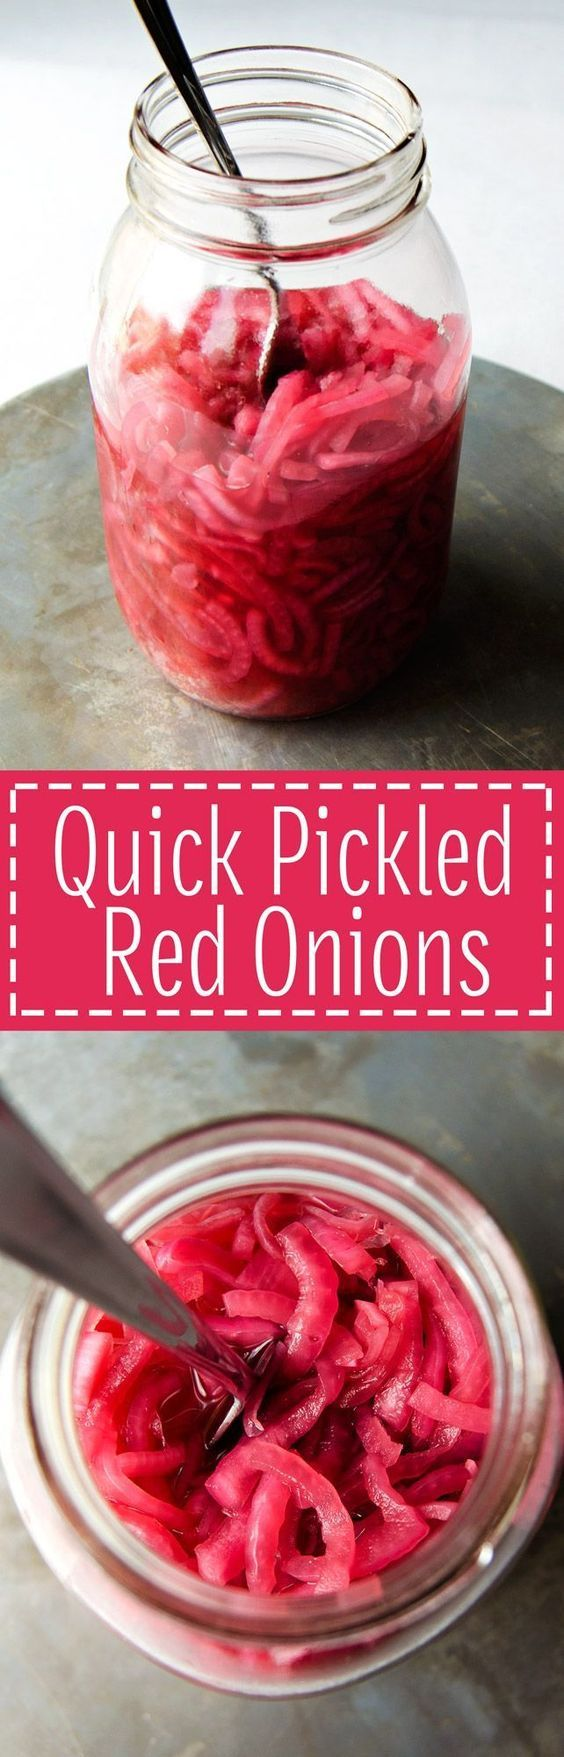 Quick Pickled Red Onions - How to make super easy quick pickled onions that are tangy and packed with flavor. (Vegan & GF) | RECIPE at http://NomingthruLife.com